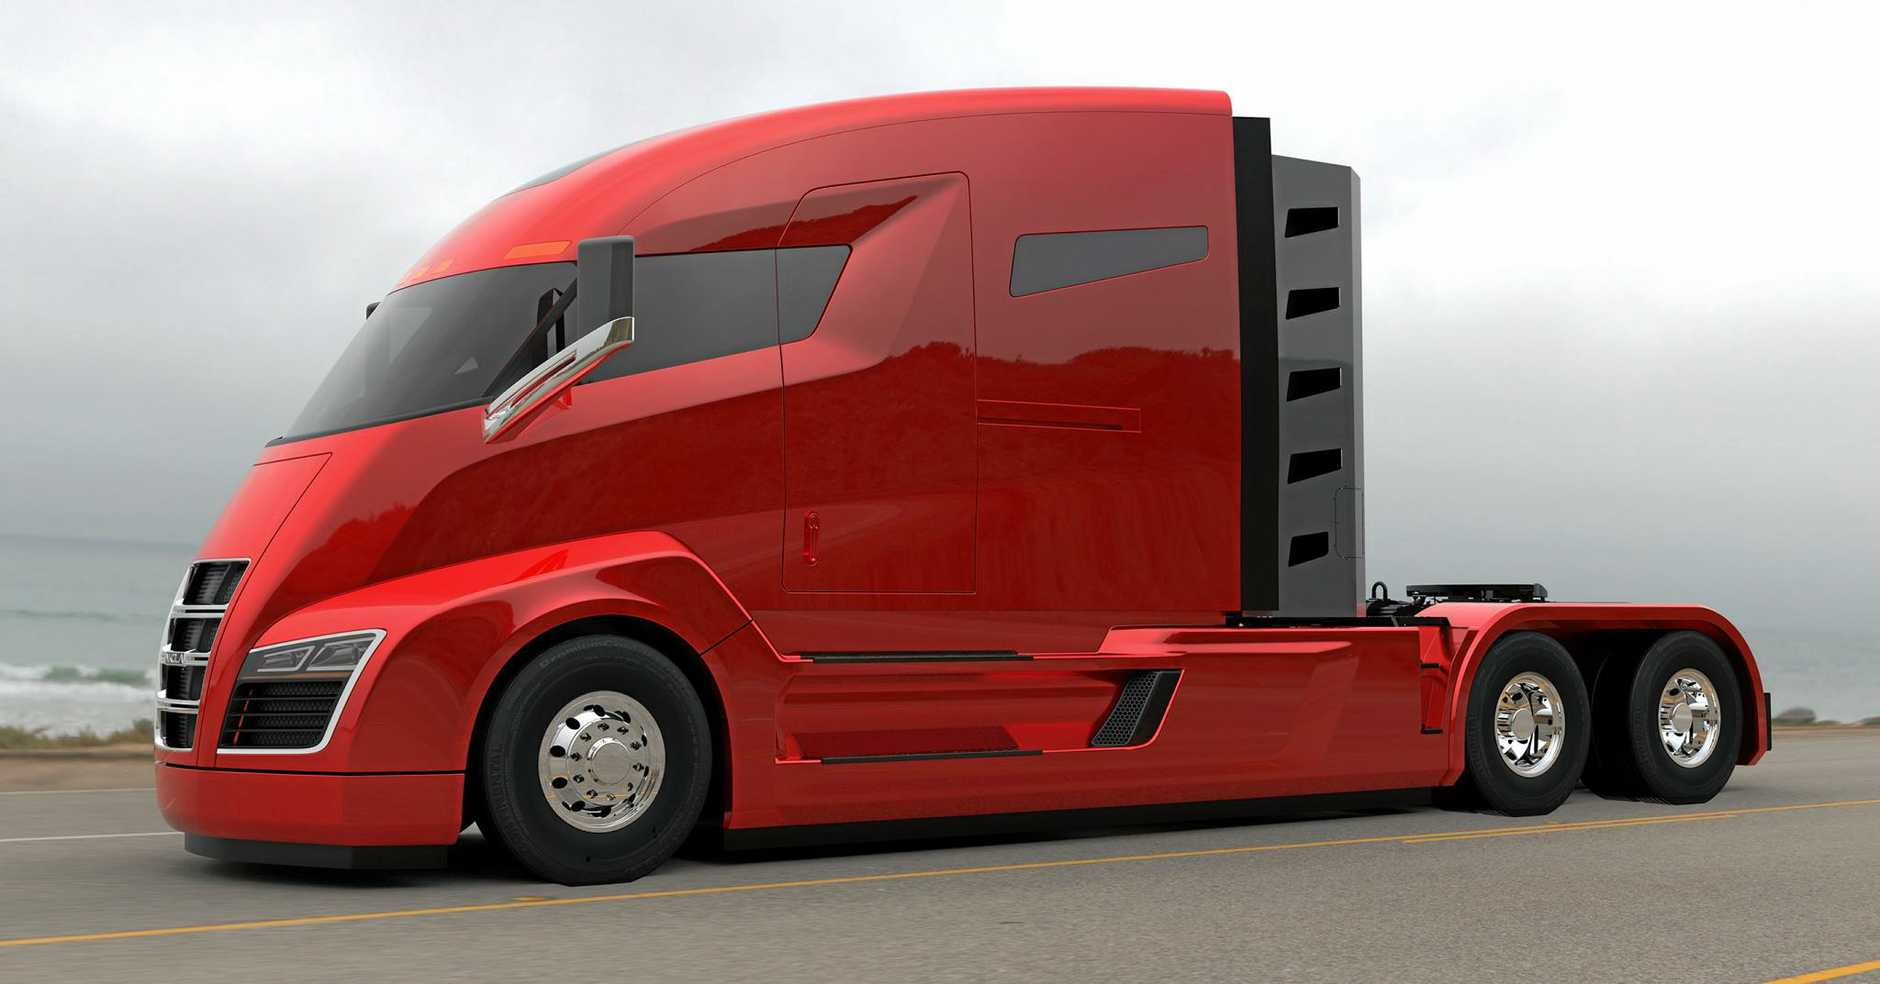 NIKOLA ONE: The futuristic electric truck offers 2,000 instant horsepower on tap and beastly 6X6 grip.